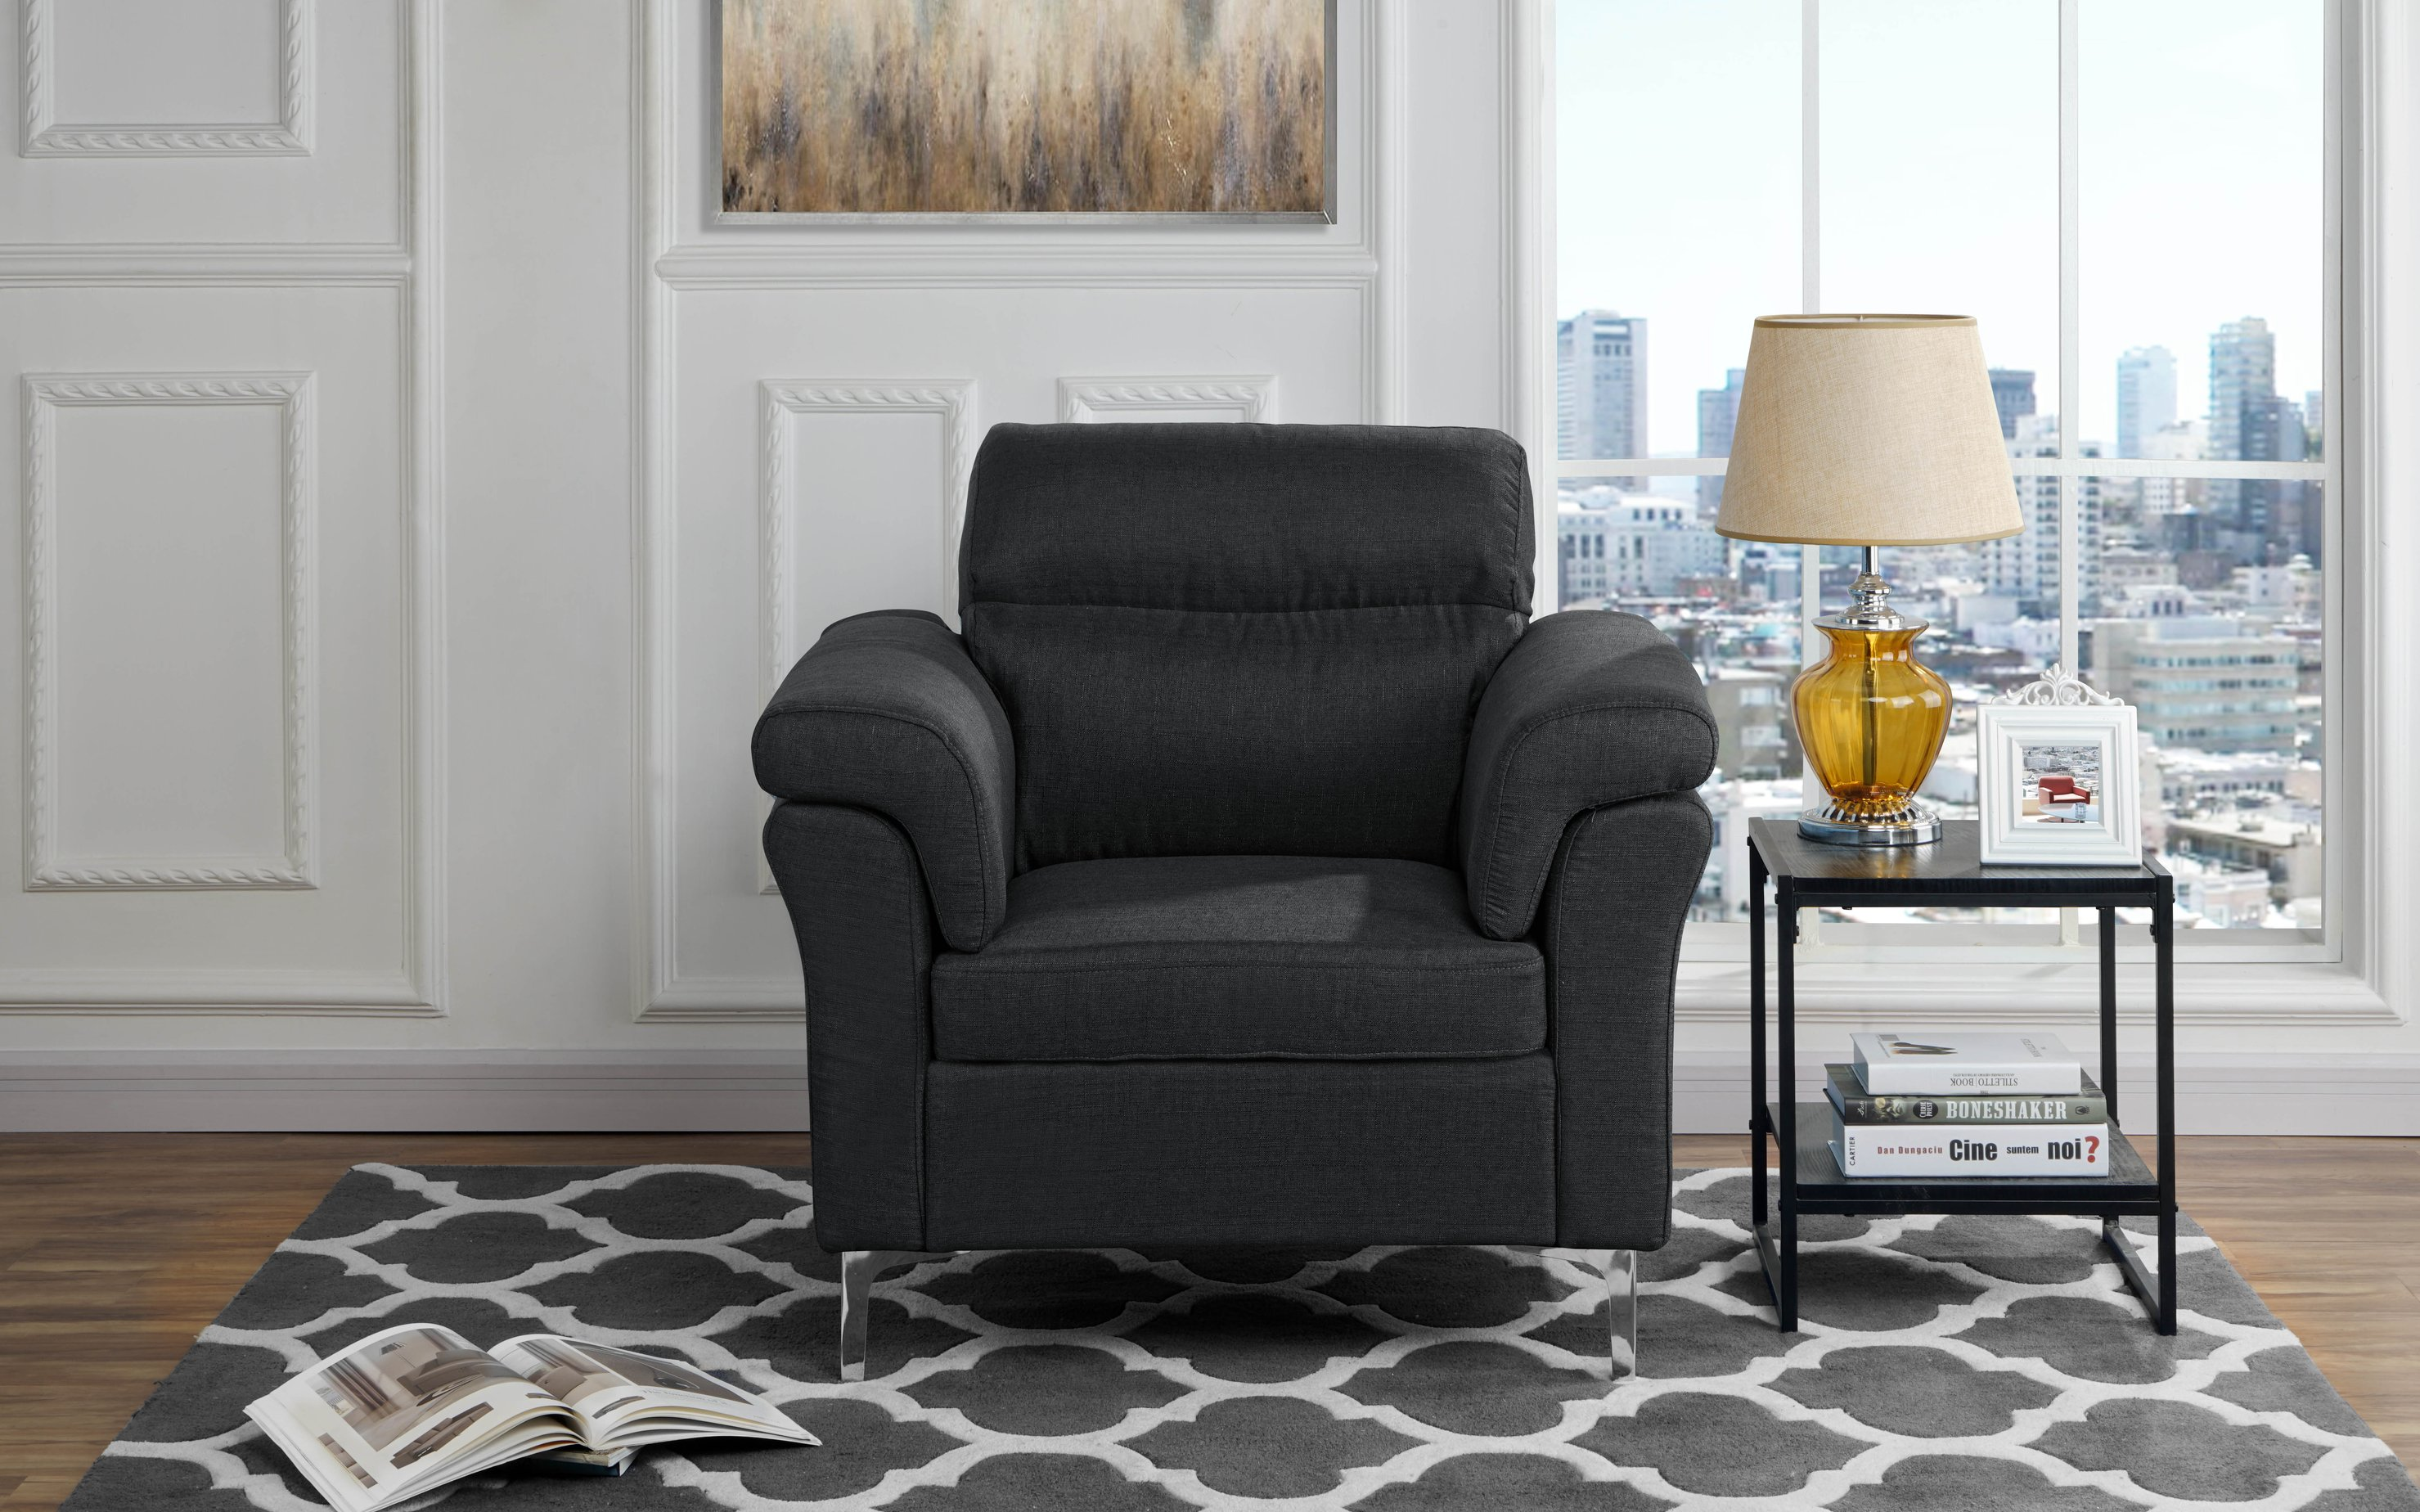 Details about contemporary living room family room fabric armchair accent chair black